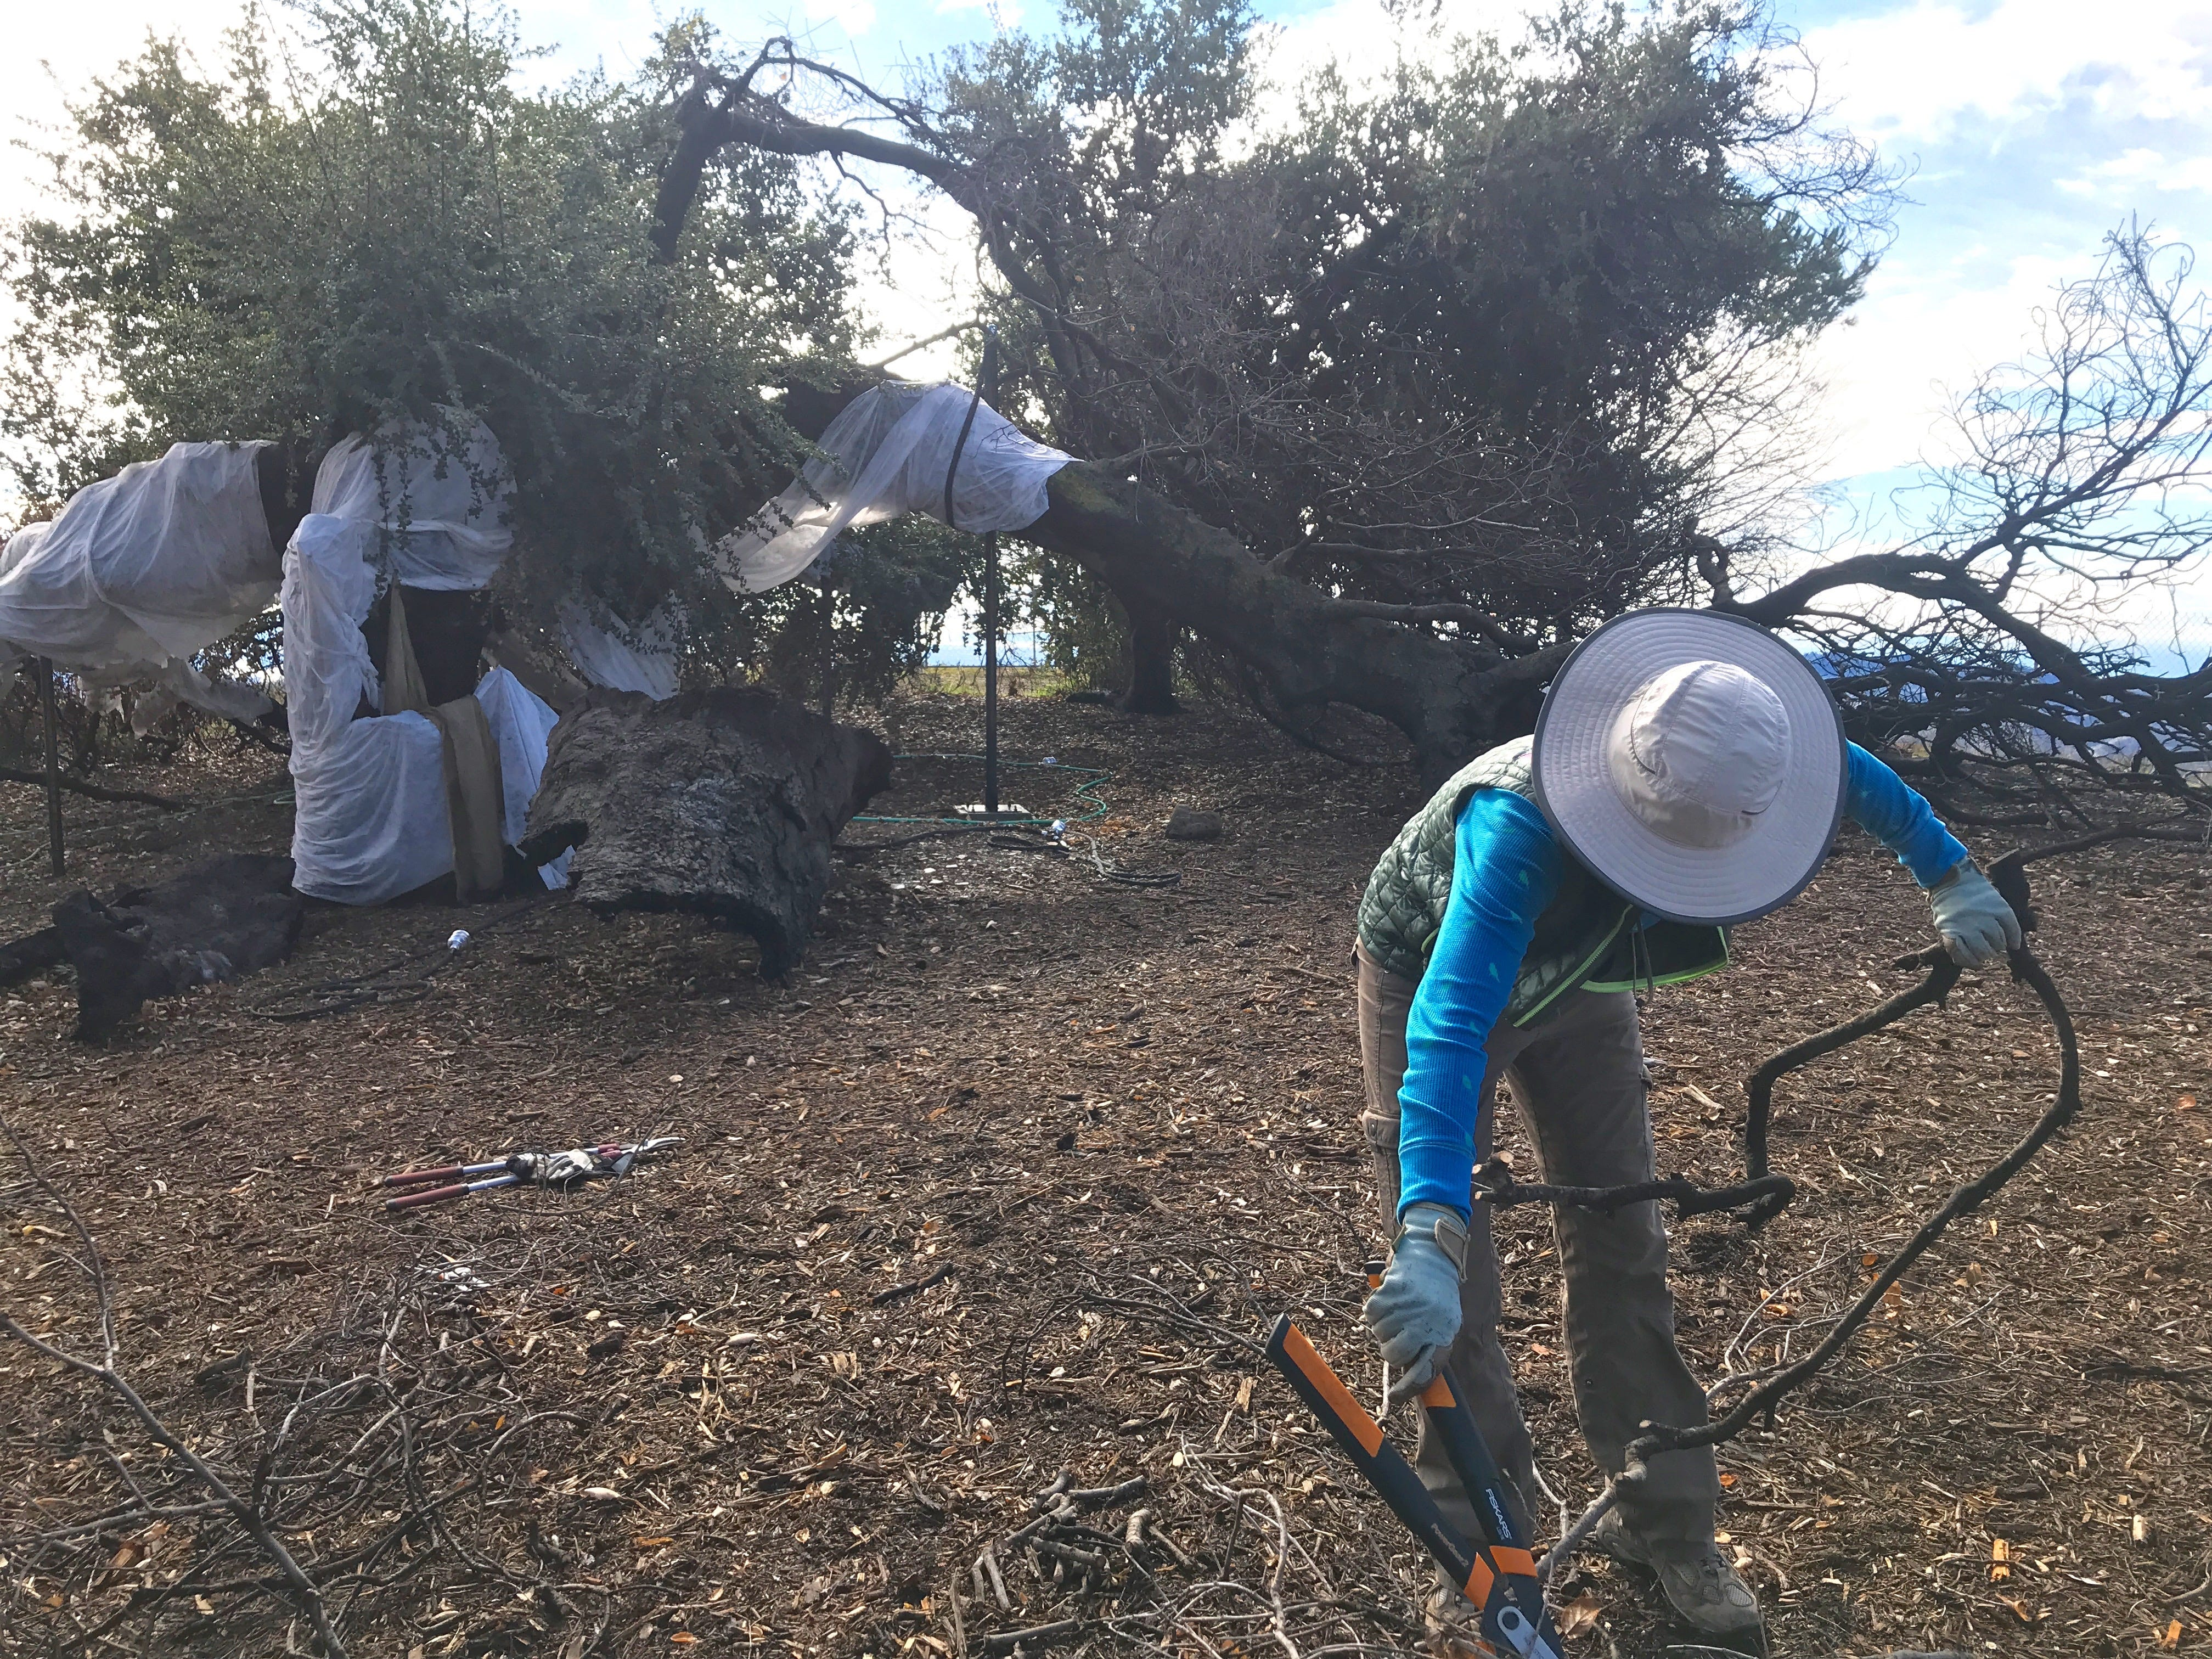 Kristina Somma, a temporary caretaker at Meher Mount in Ojai, collects sacred sticks from the dead wood left behind after Baba's Tree partly collapsed and burned during the Thomas Fire.